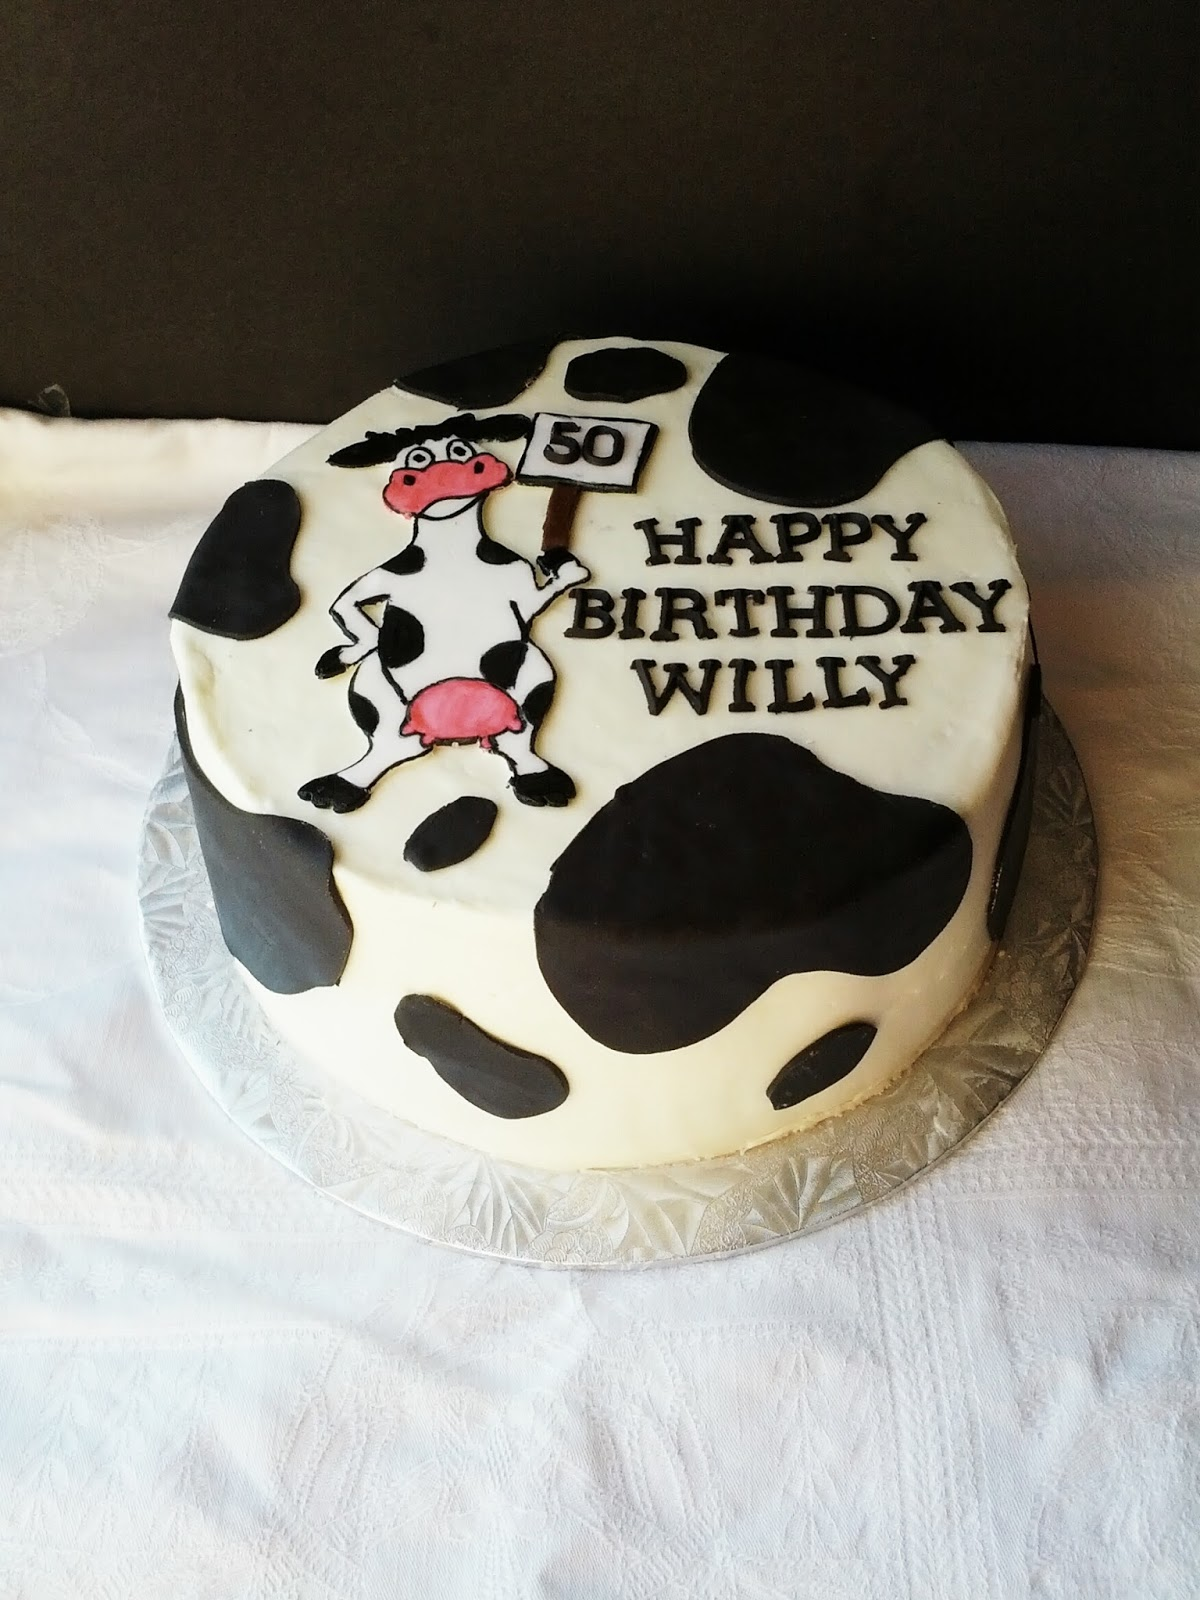 Second Generation Cake Design Cow Themed 50th Birthday Cake